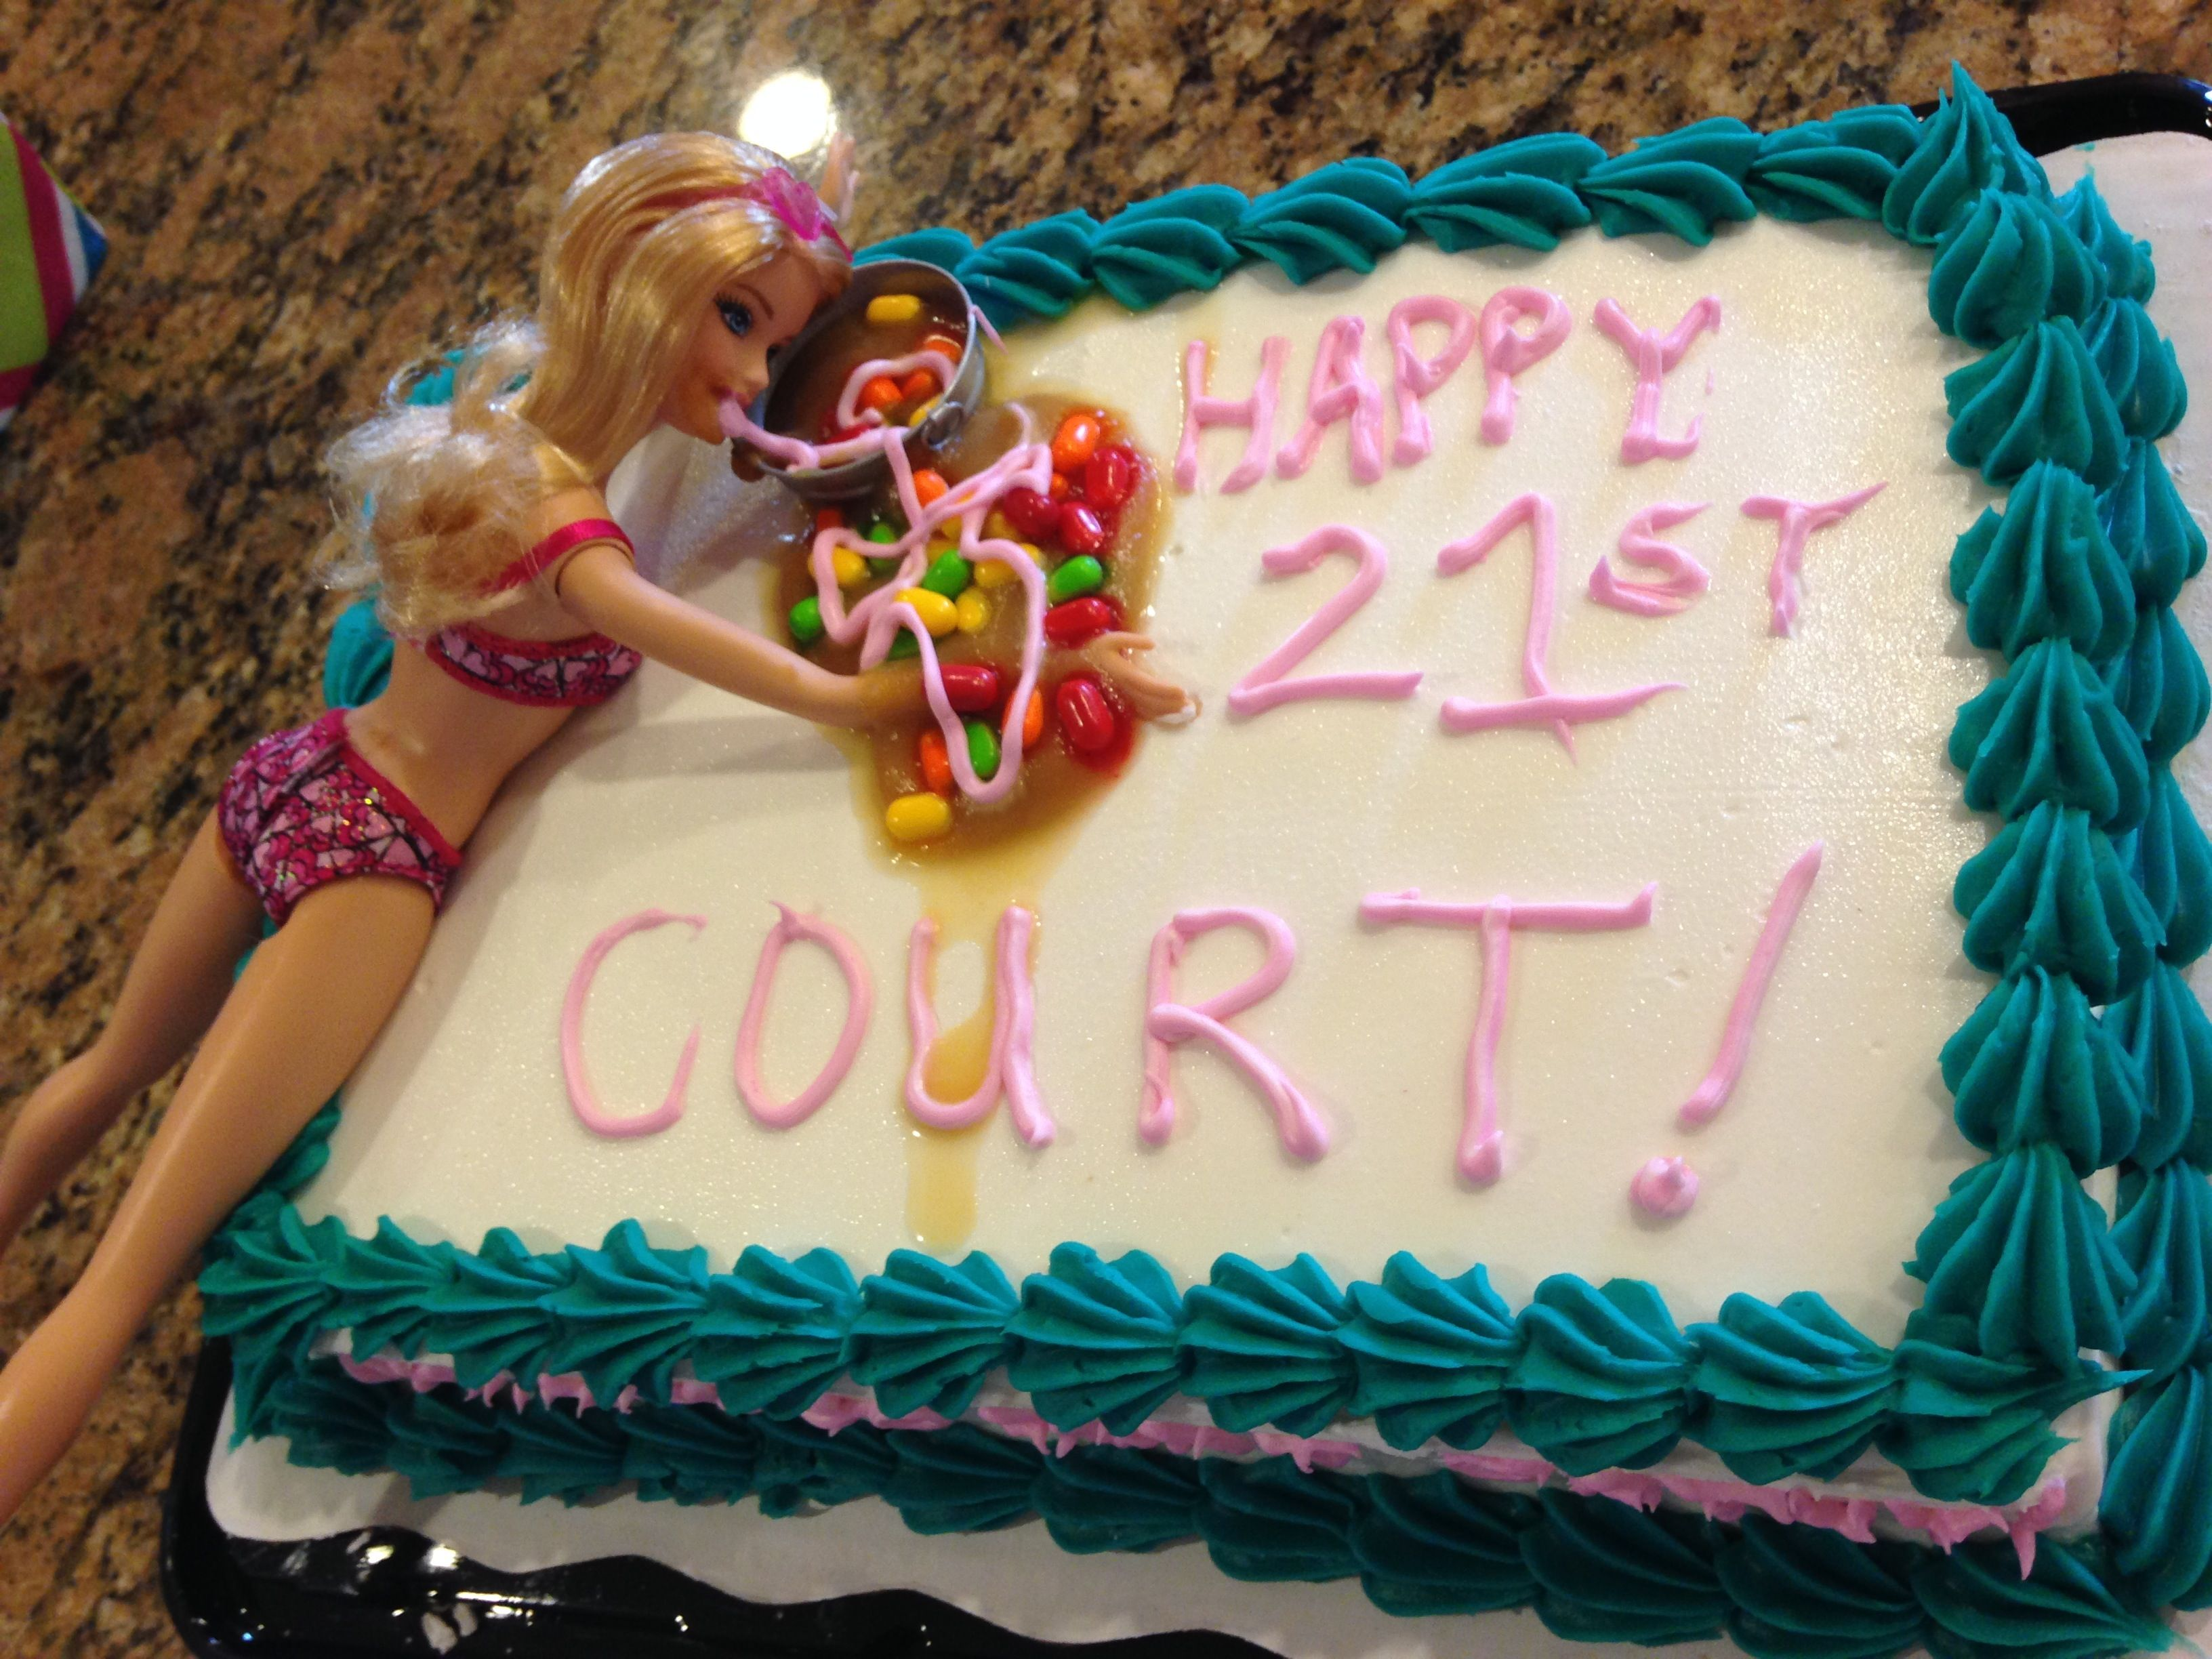 21st birthday cakequick and fun for the nonbaker Walmart cake